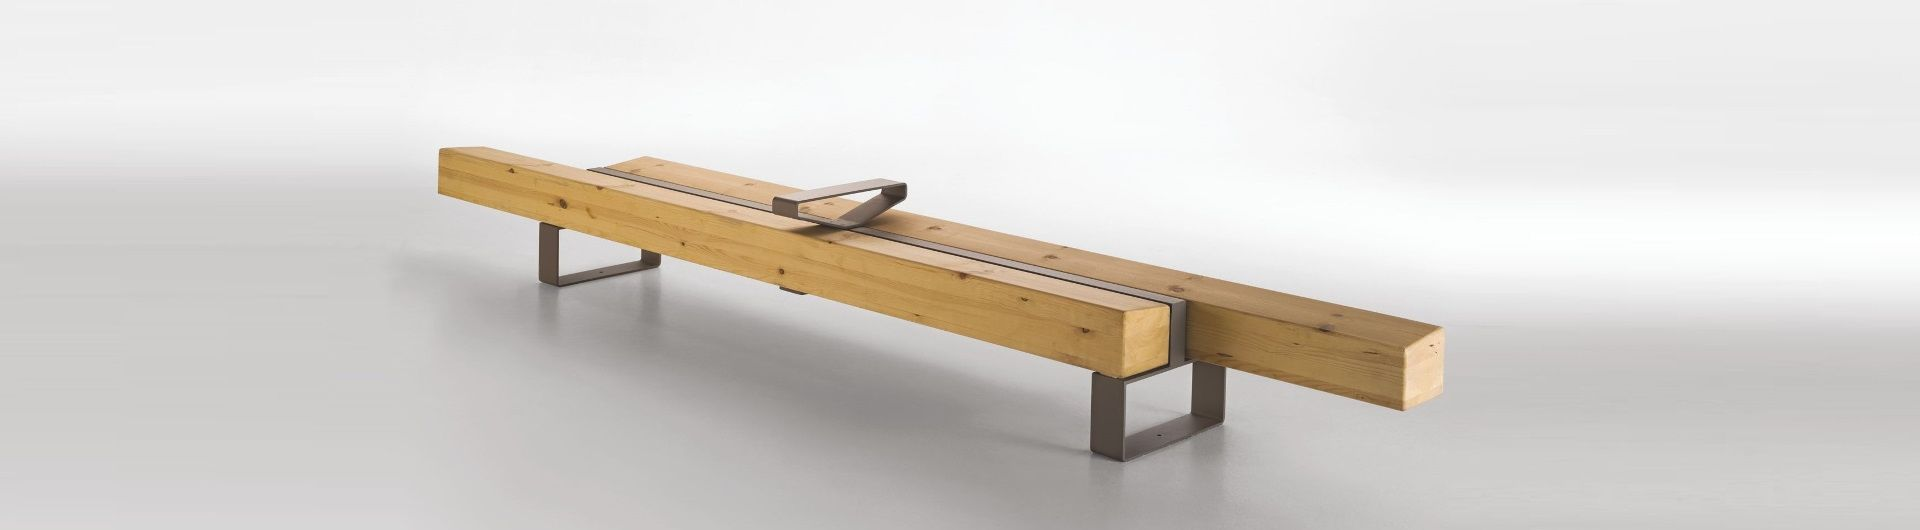 Banc Bois Design FORESTA METALCO récompensé GOOD DESIGN AWARD